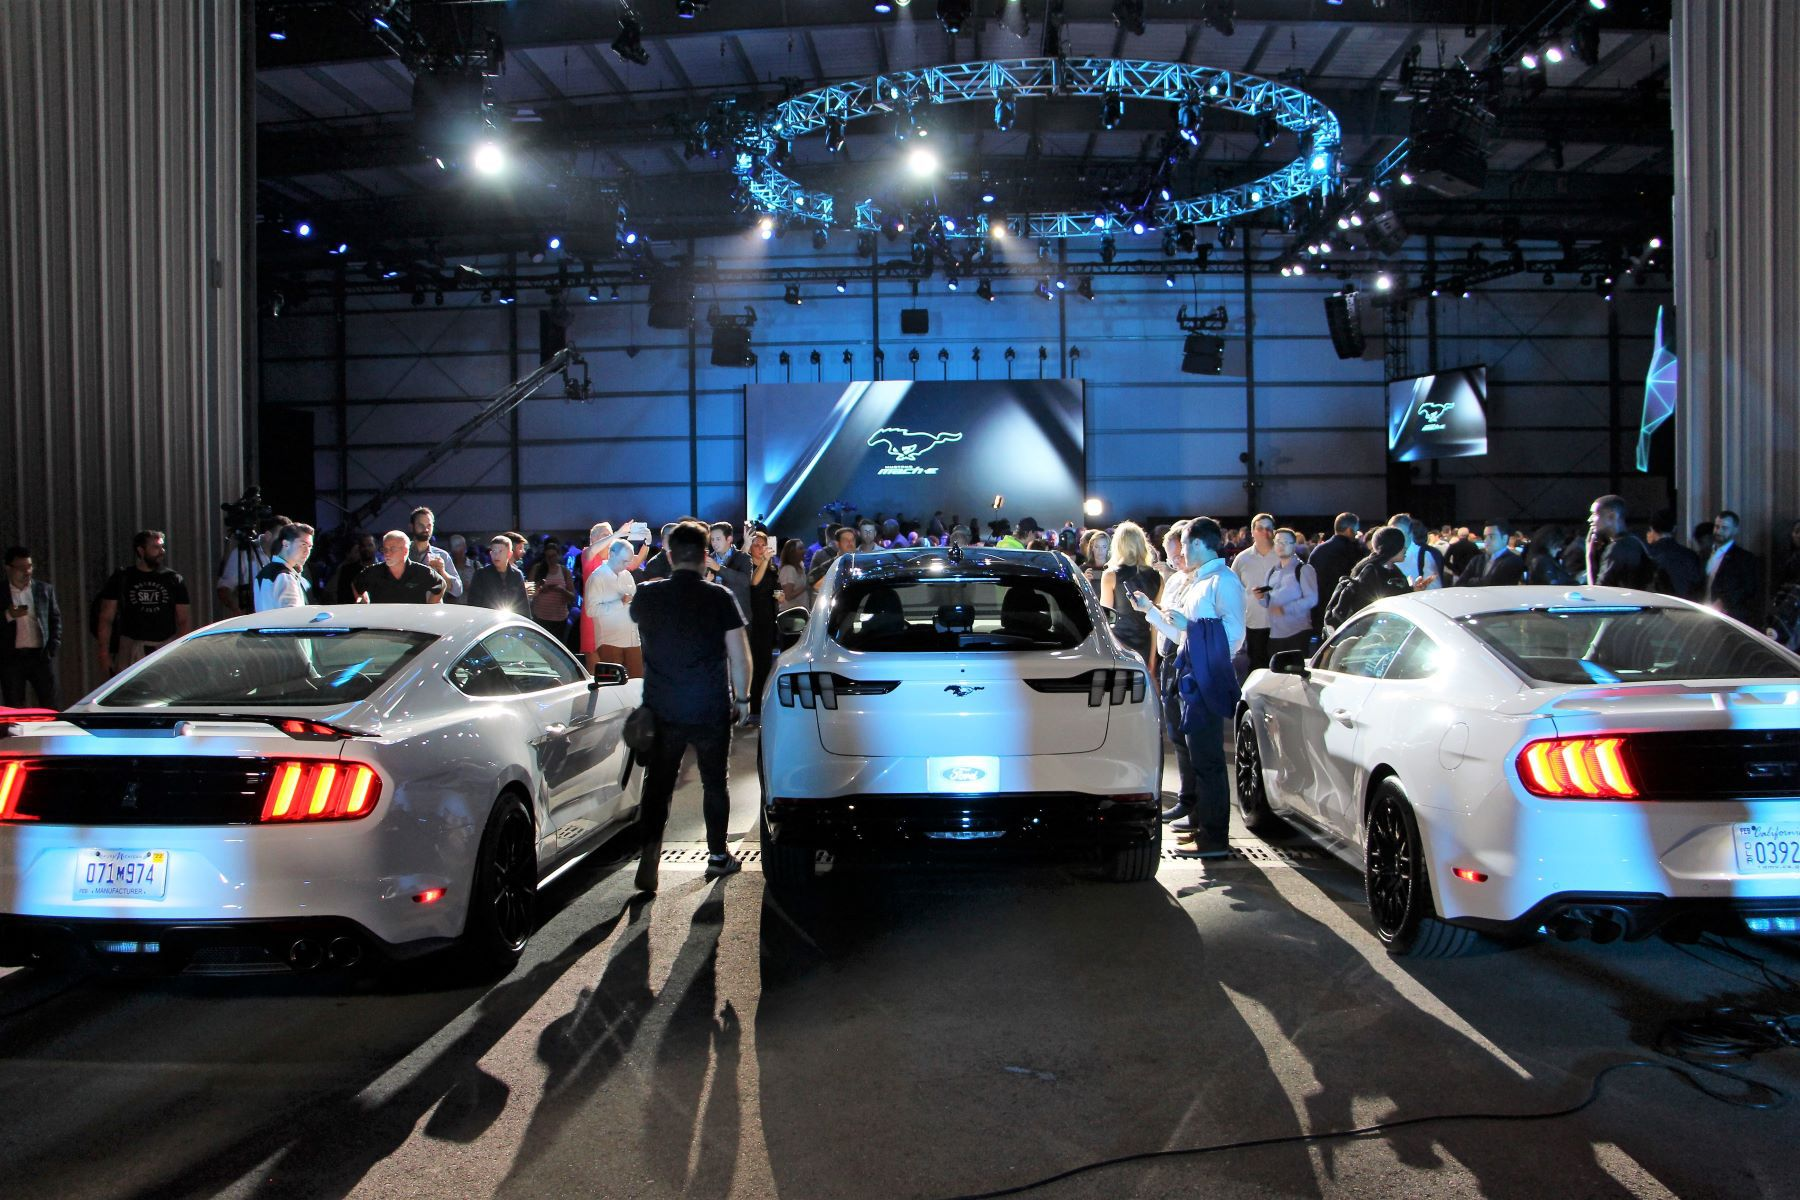 Los-Angeles-Auto-Show-Ford-Mustang-Mache-Quebec-Driveway-2019-NF (14)